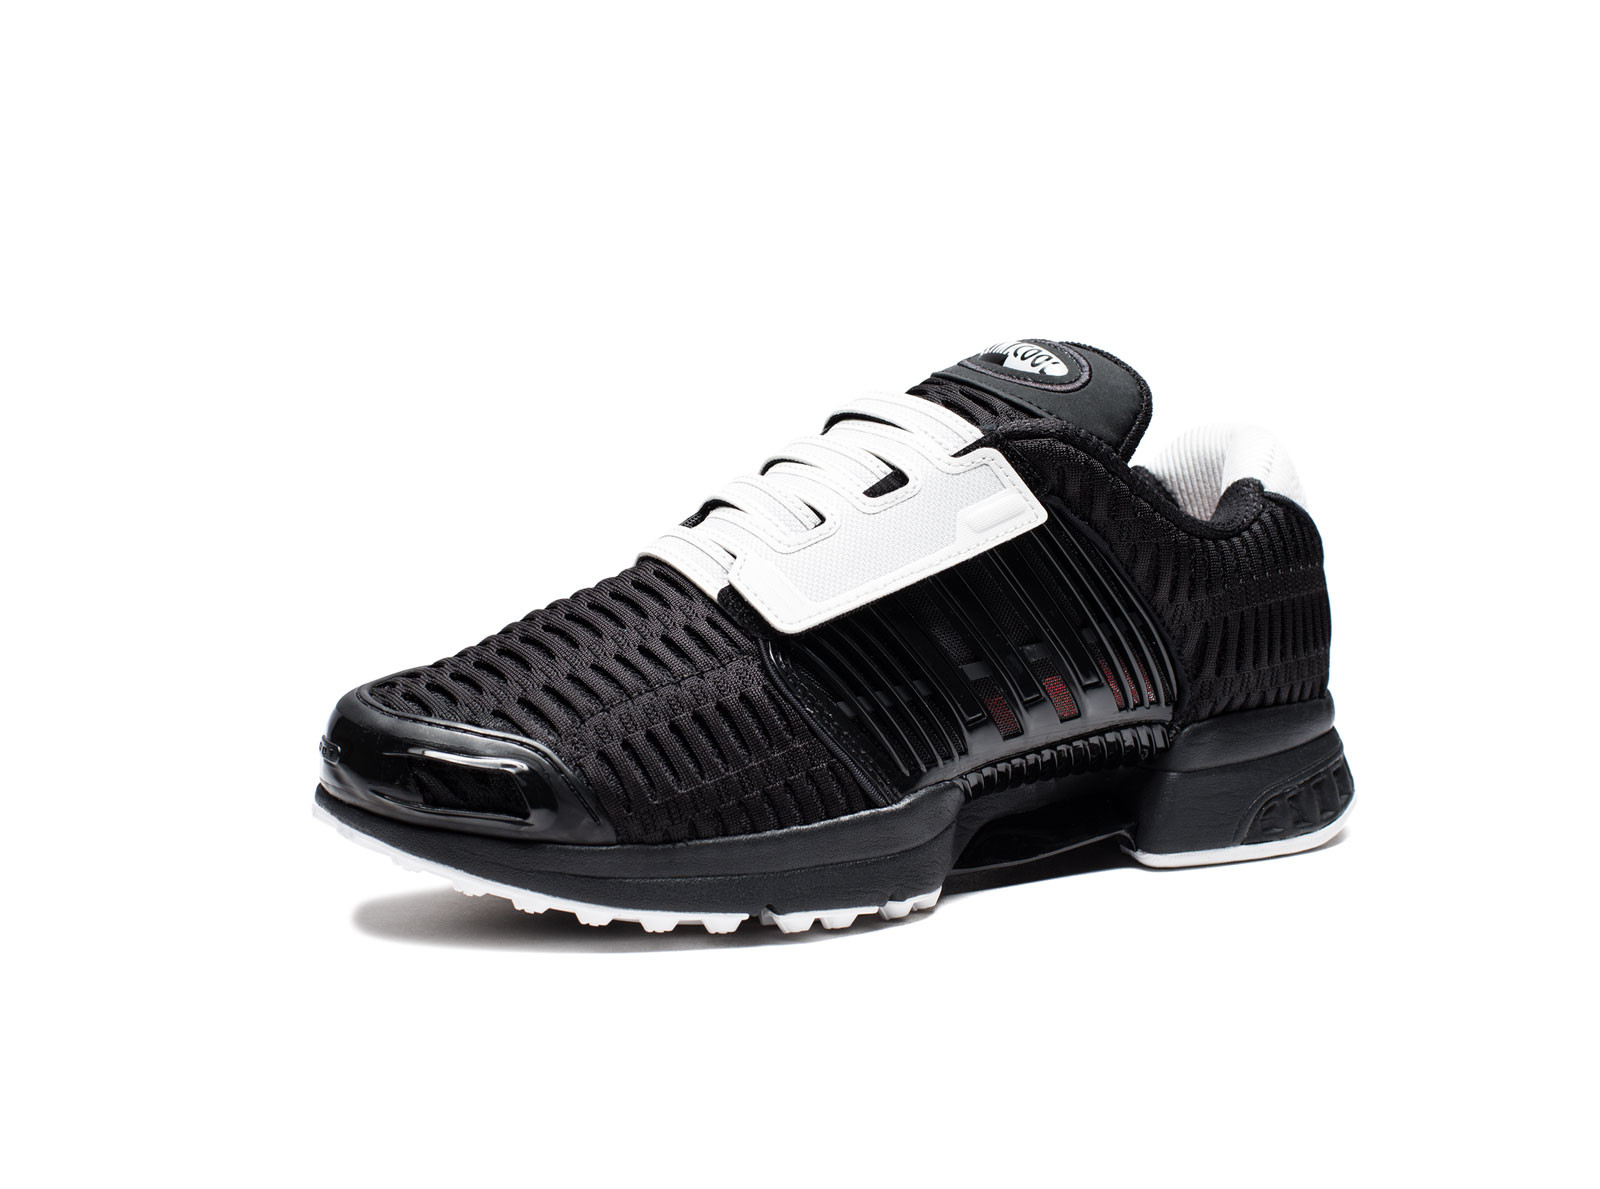 buy online 0a1f0 6fb7b ADIDAS CLIMACOOL 1 CMF - BLACK | Undefeated